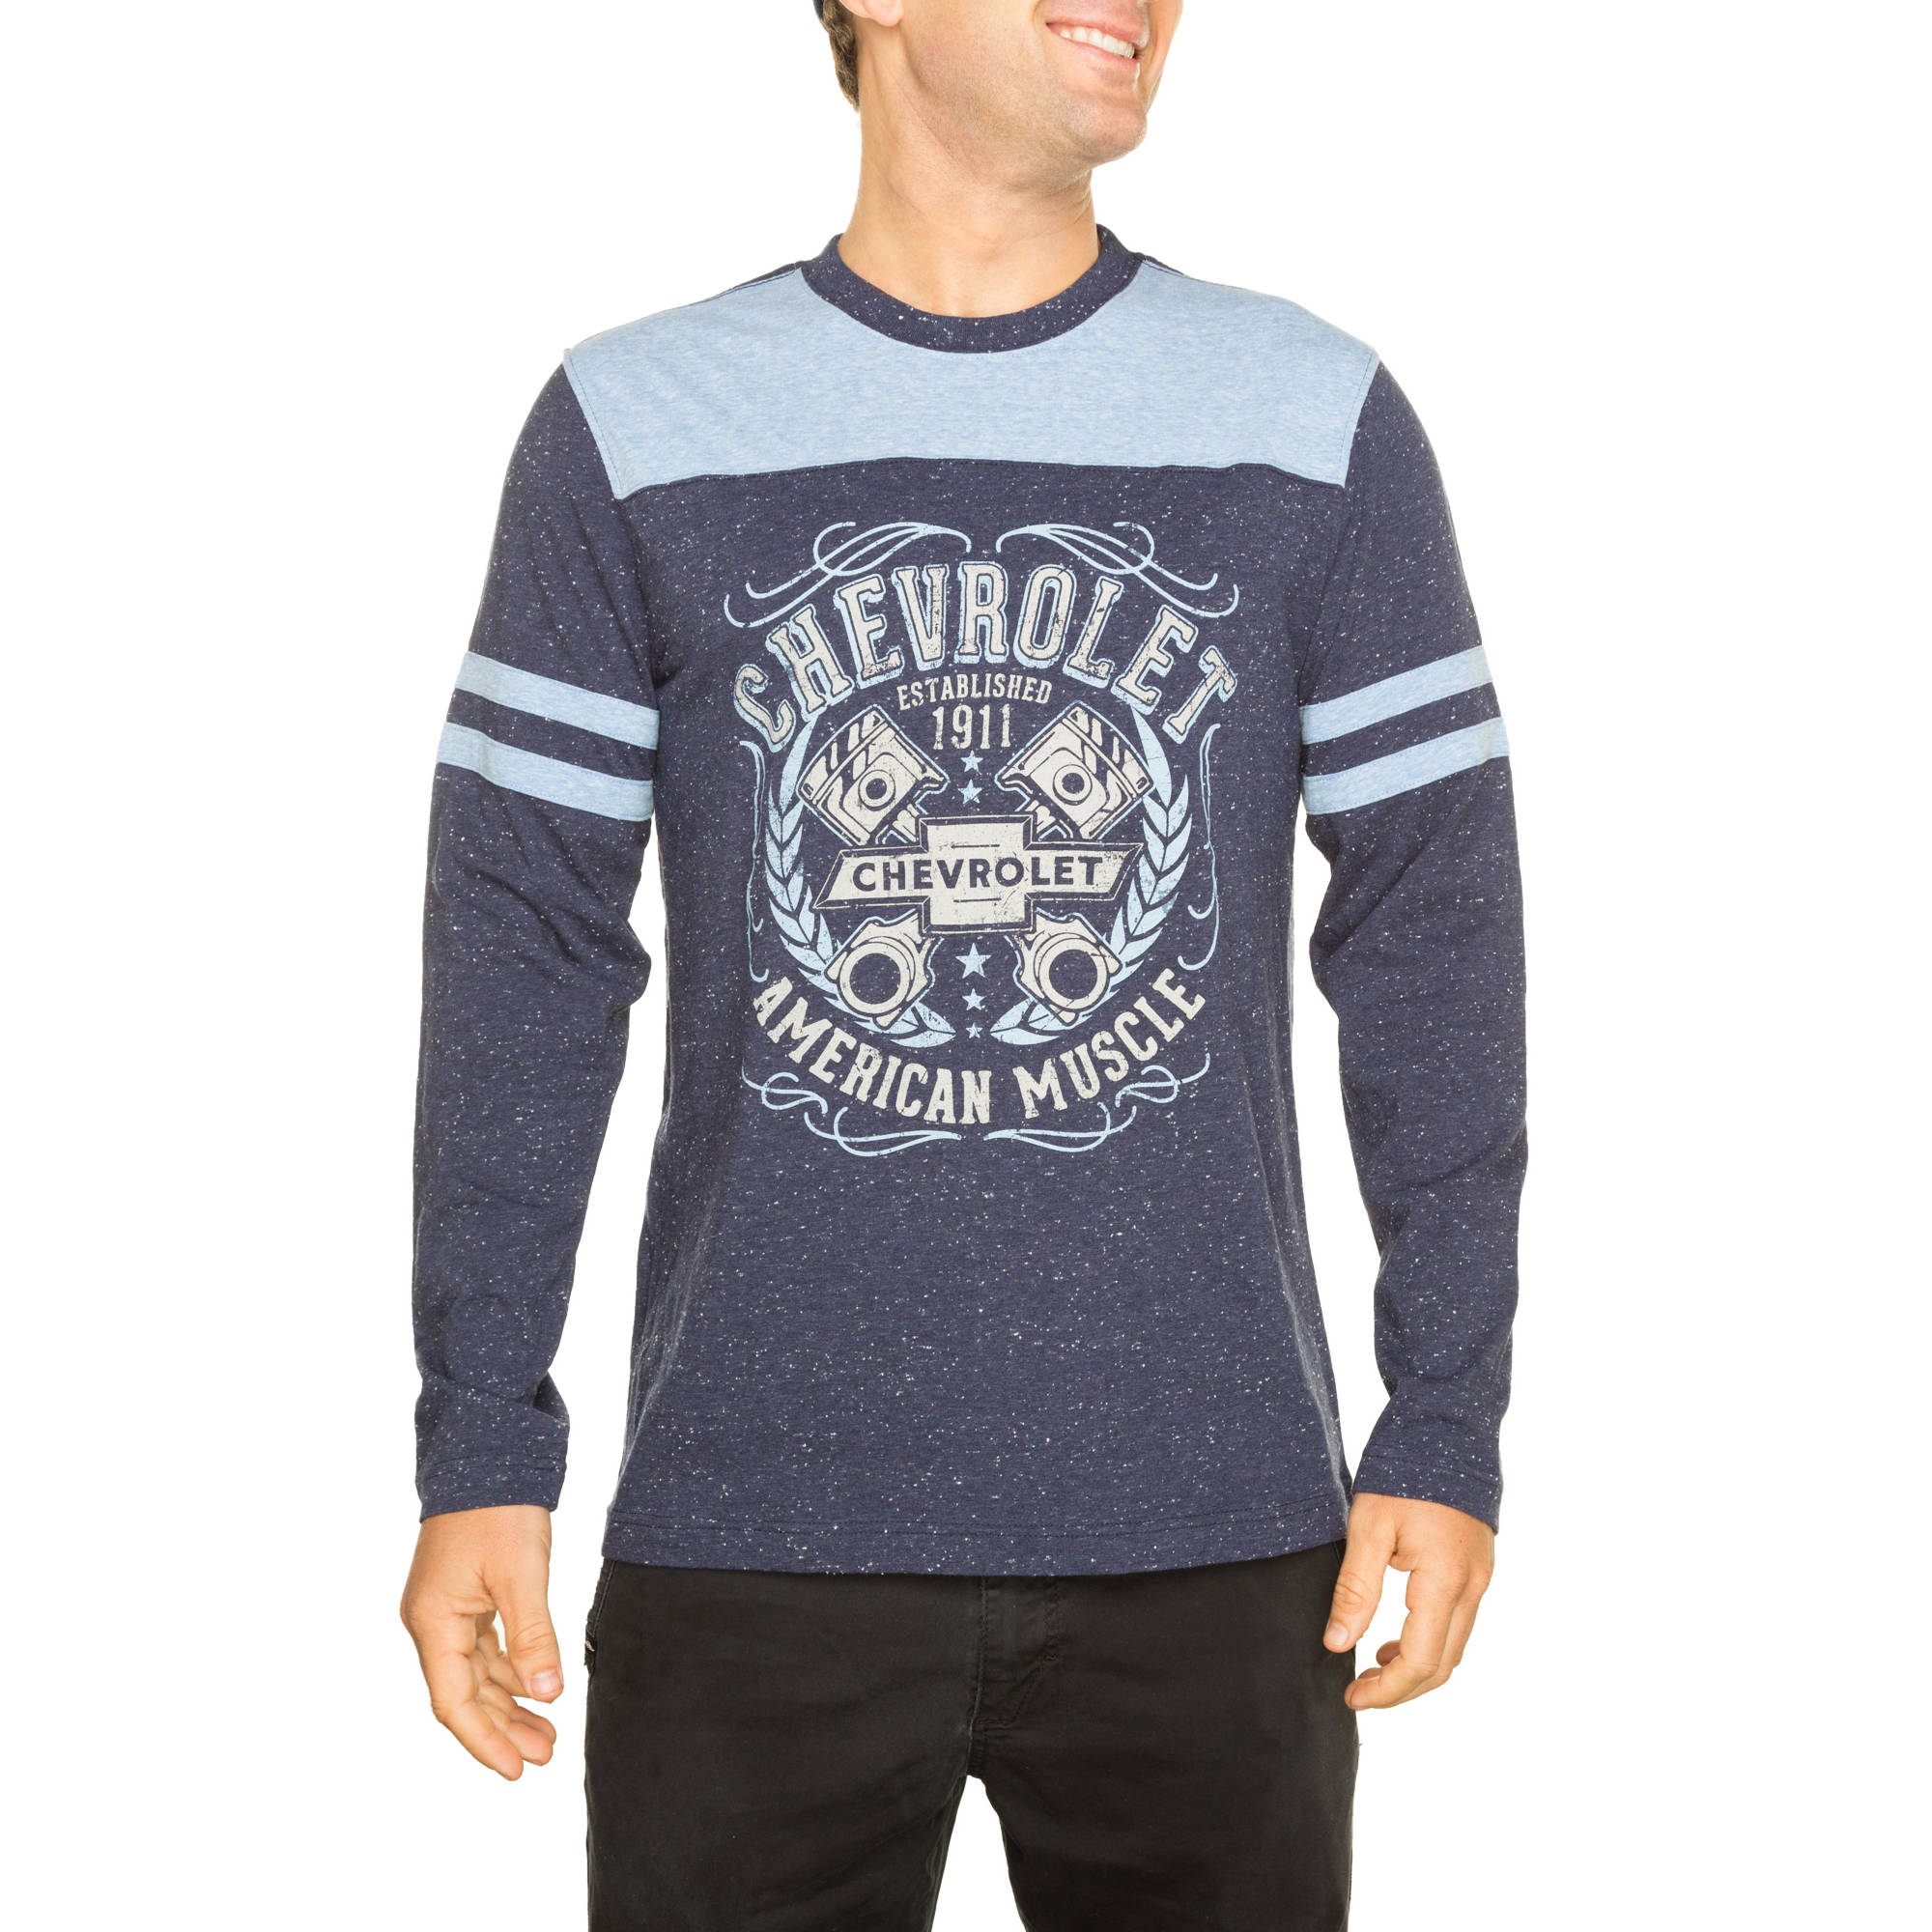 General Big Men's Long Sleeve Graphic Football Tee, 2XL